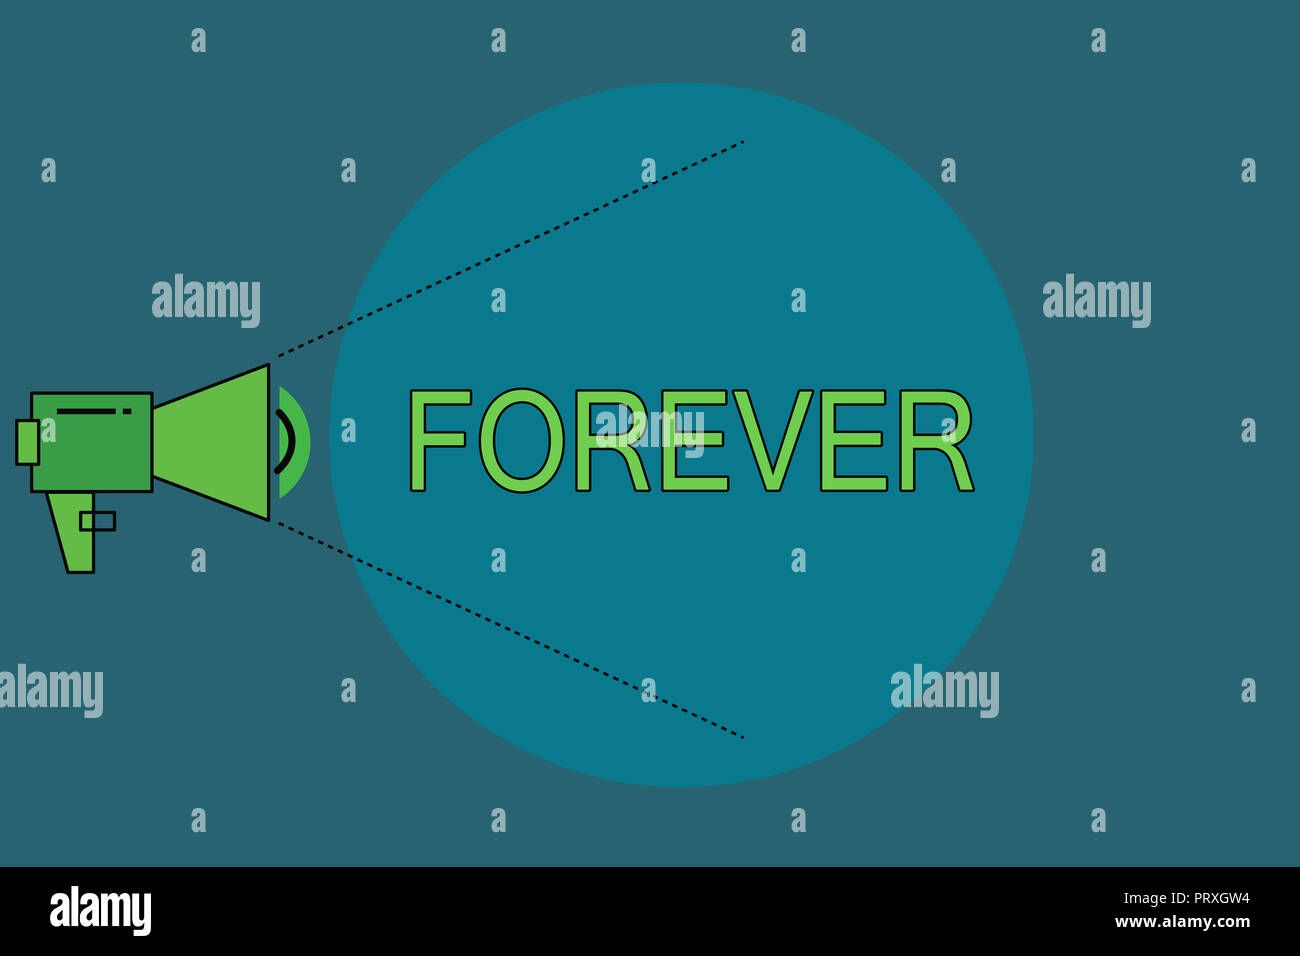 Word writing text Forever. Business concept for Everlasting Peranalysisent Always for future time endless Eternal. - Stock Image